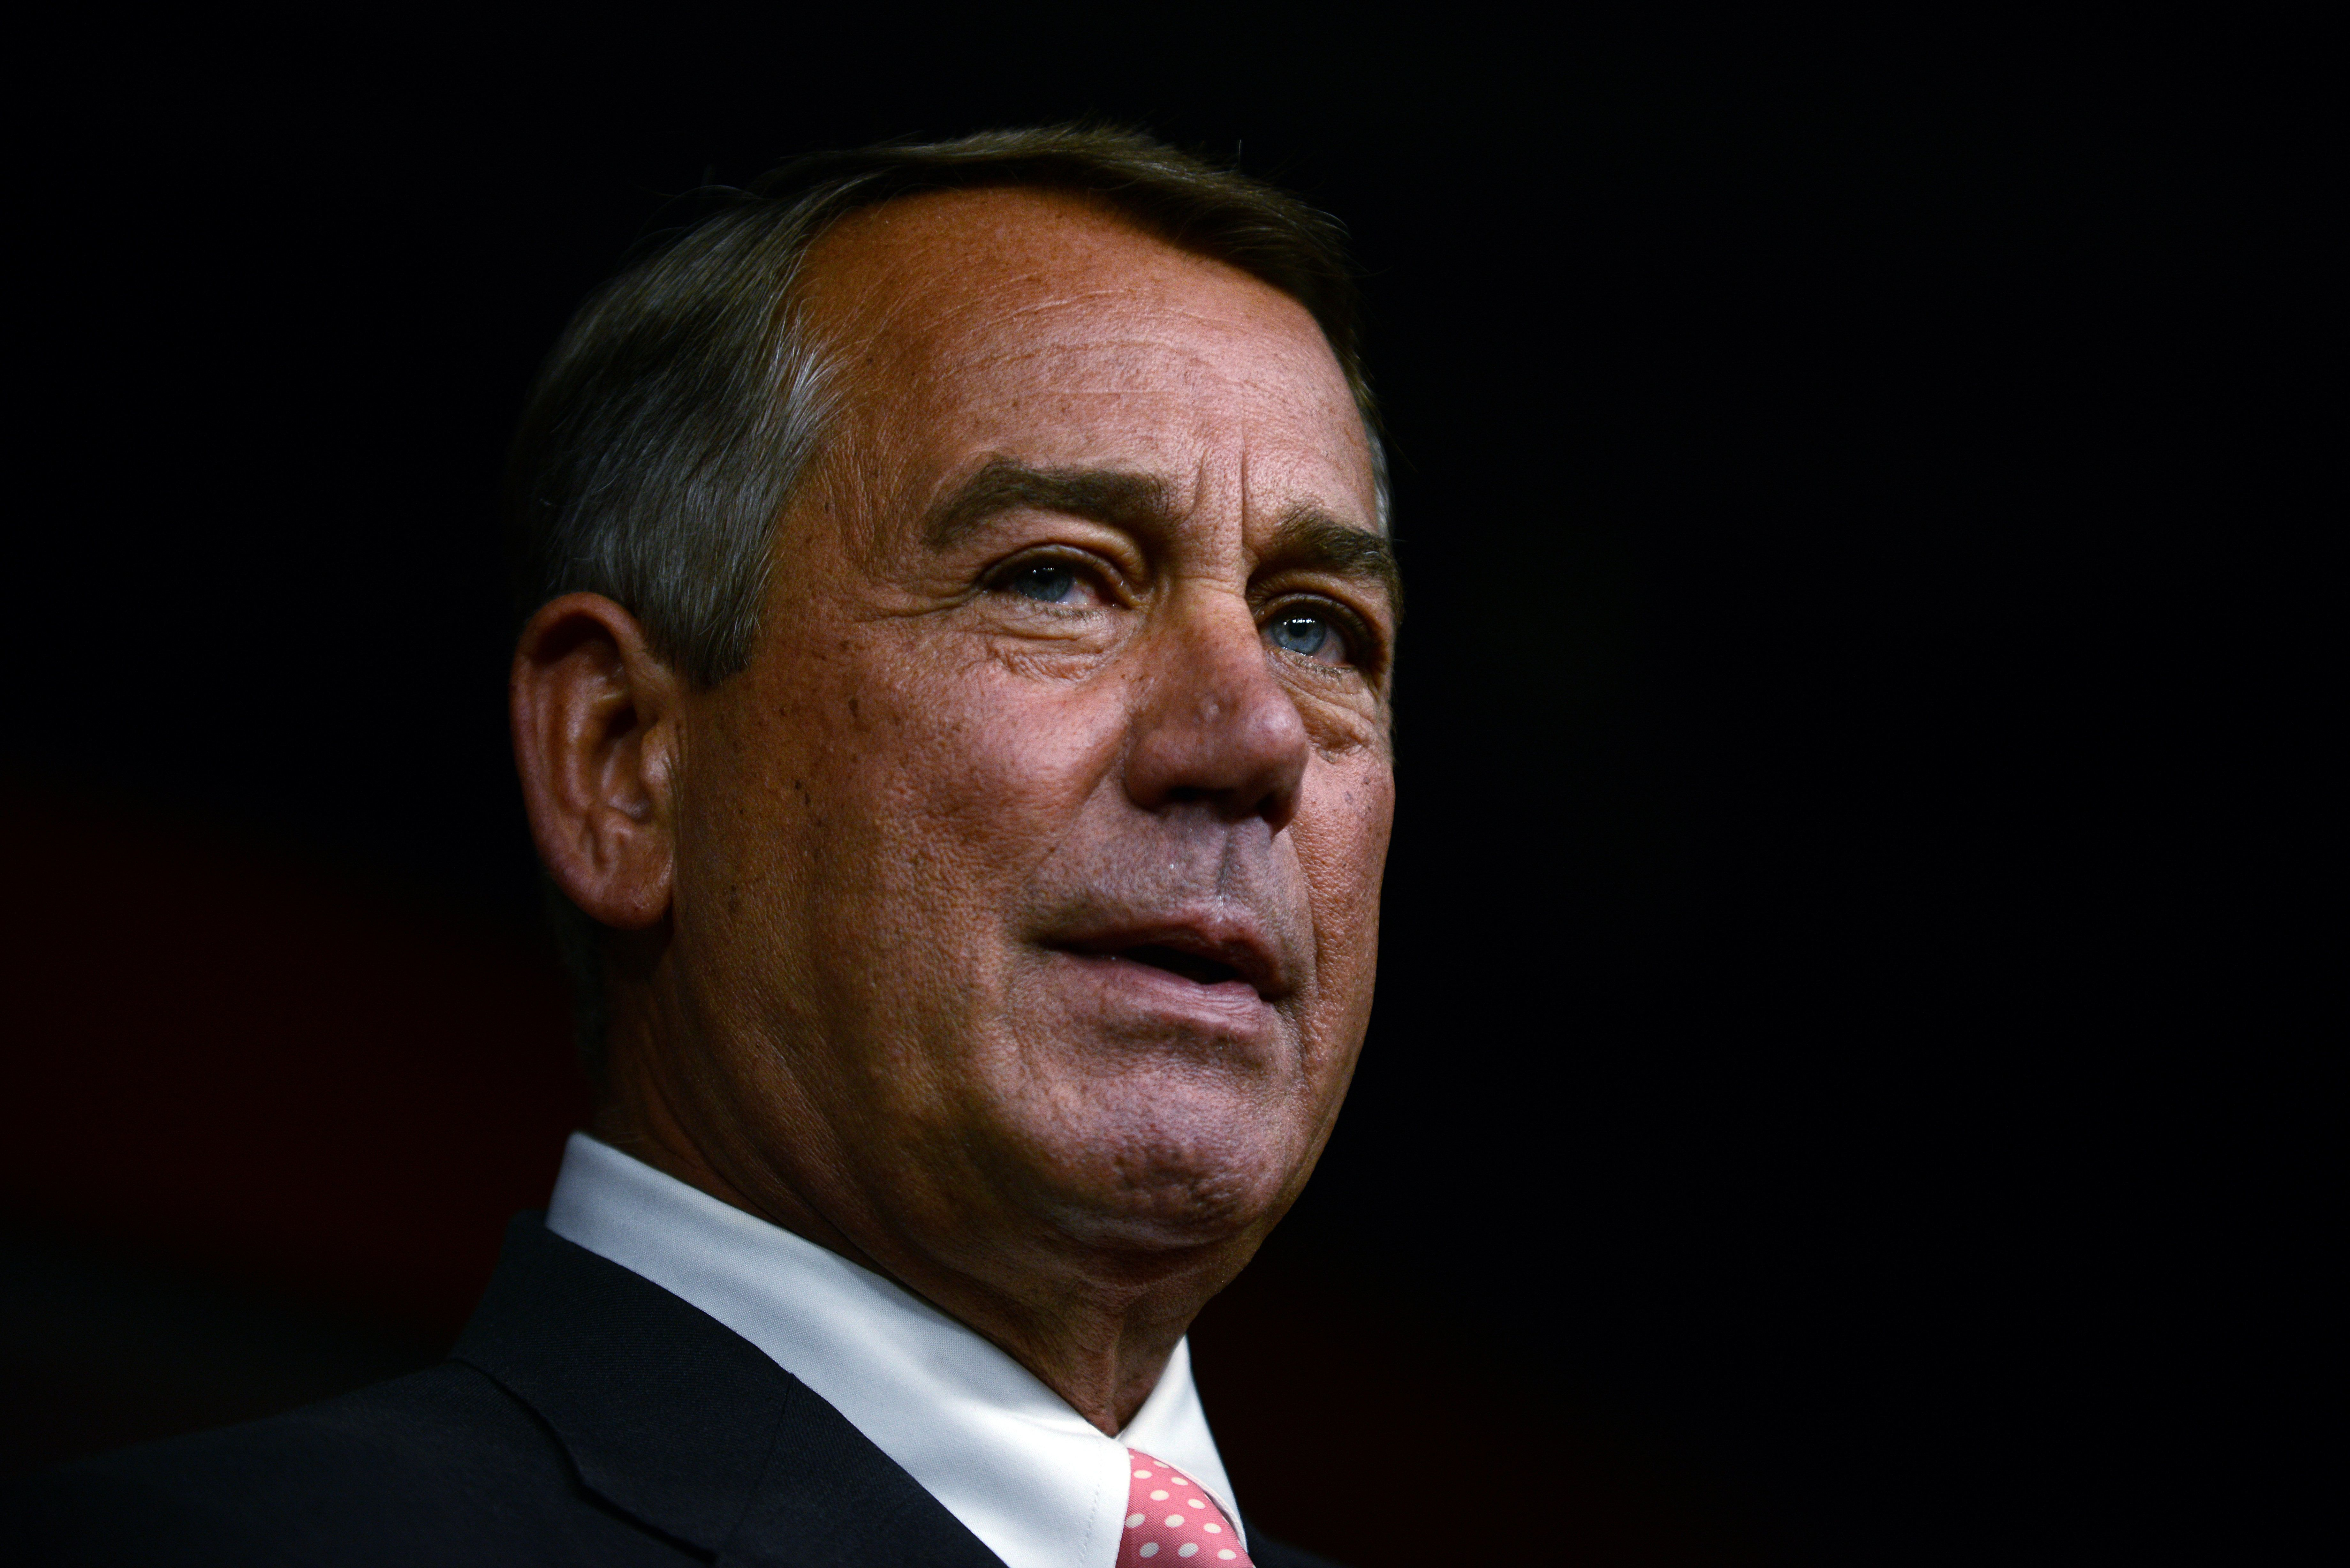 WASHINGTON, DC - SEPTEMBER 25: House Speaker John Boehner announces his resignation during a press conference on Capitol Hill September 25, 2015 in Washington, DC. After 25 years in Congress and five years as Speaker, Boehner said he decided this morning to step down after contemplation and prayer.  (Photo by Astrid Riecken/Getty Images)